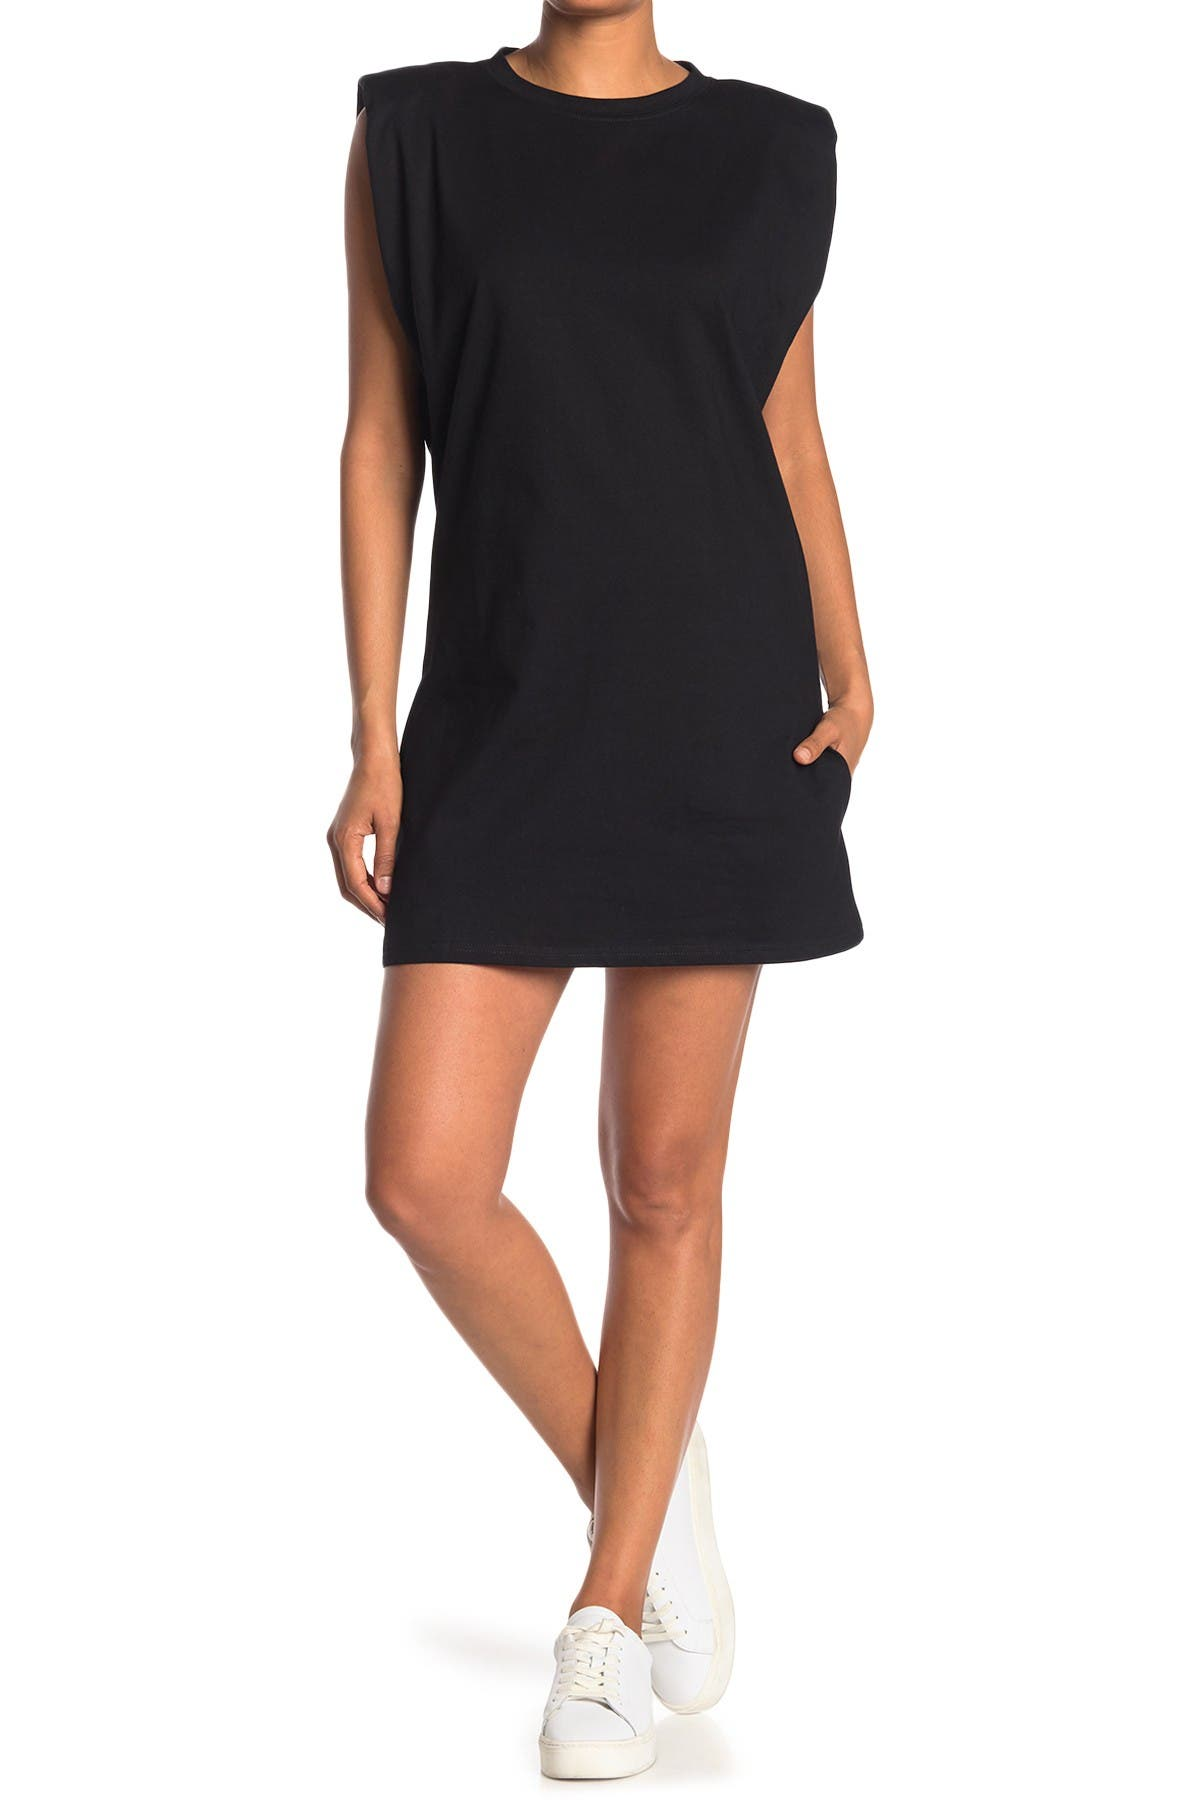 Image of ONE ONE SIX Shoulder Pad Jersey Knit Shift Dress